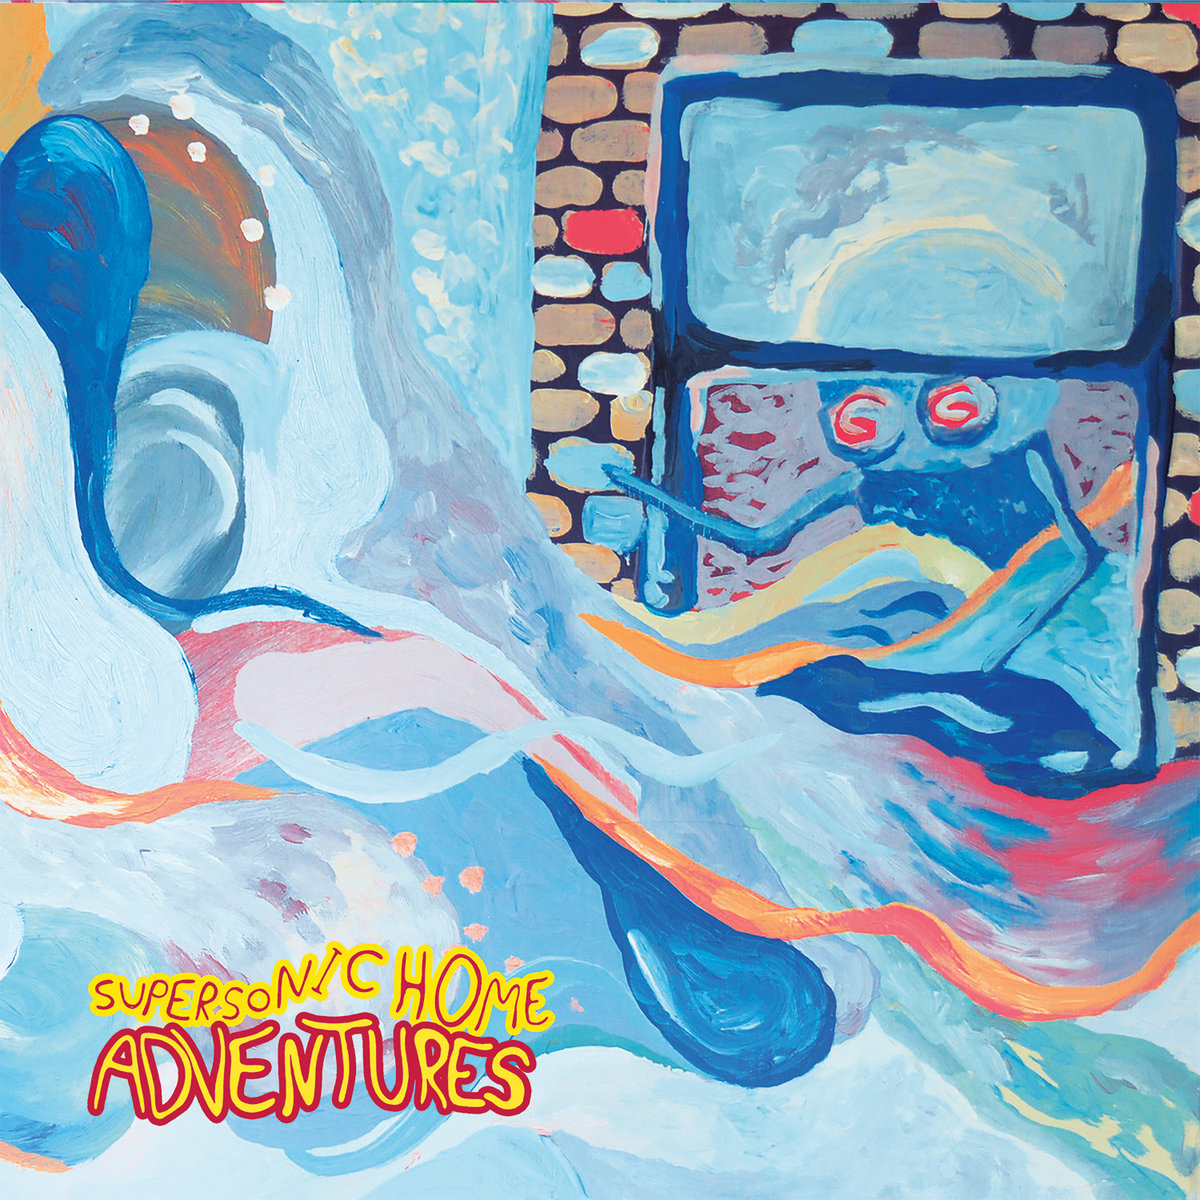 Adventures - Supersonic Home LP